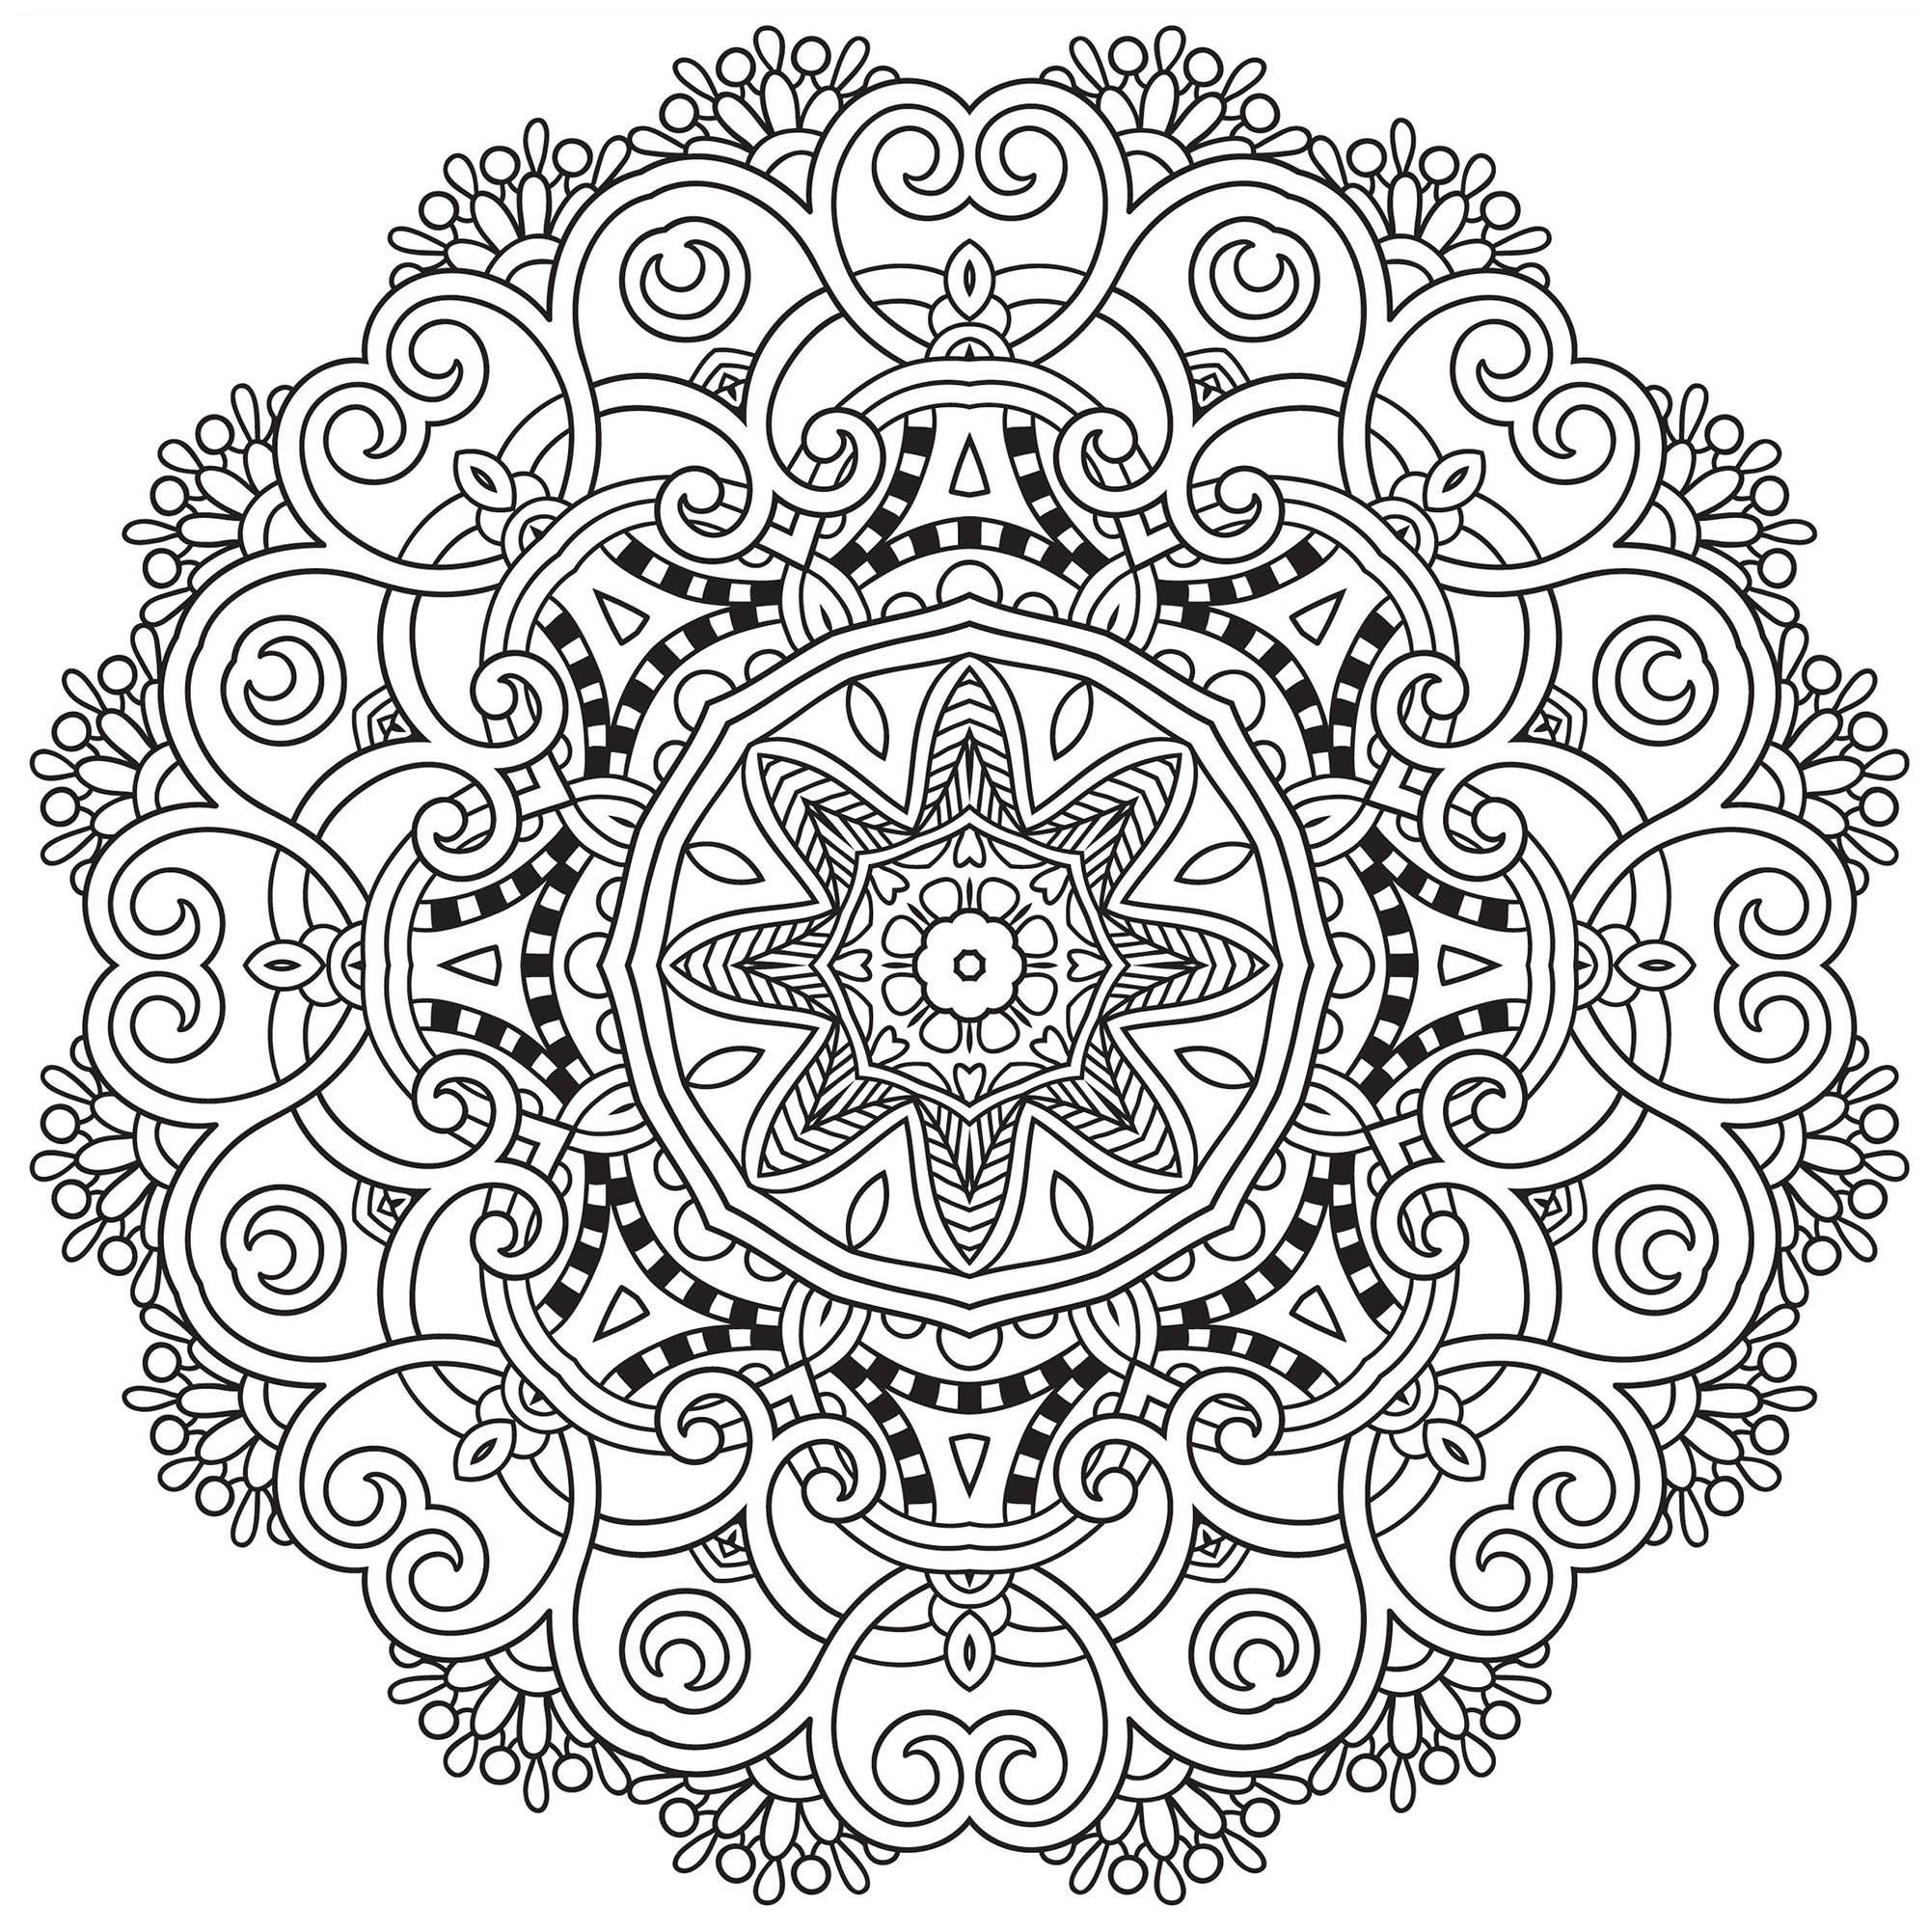 Flower Mandala Coloring Pages Best Coloring Pages For Kids